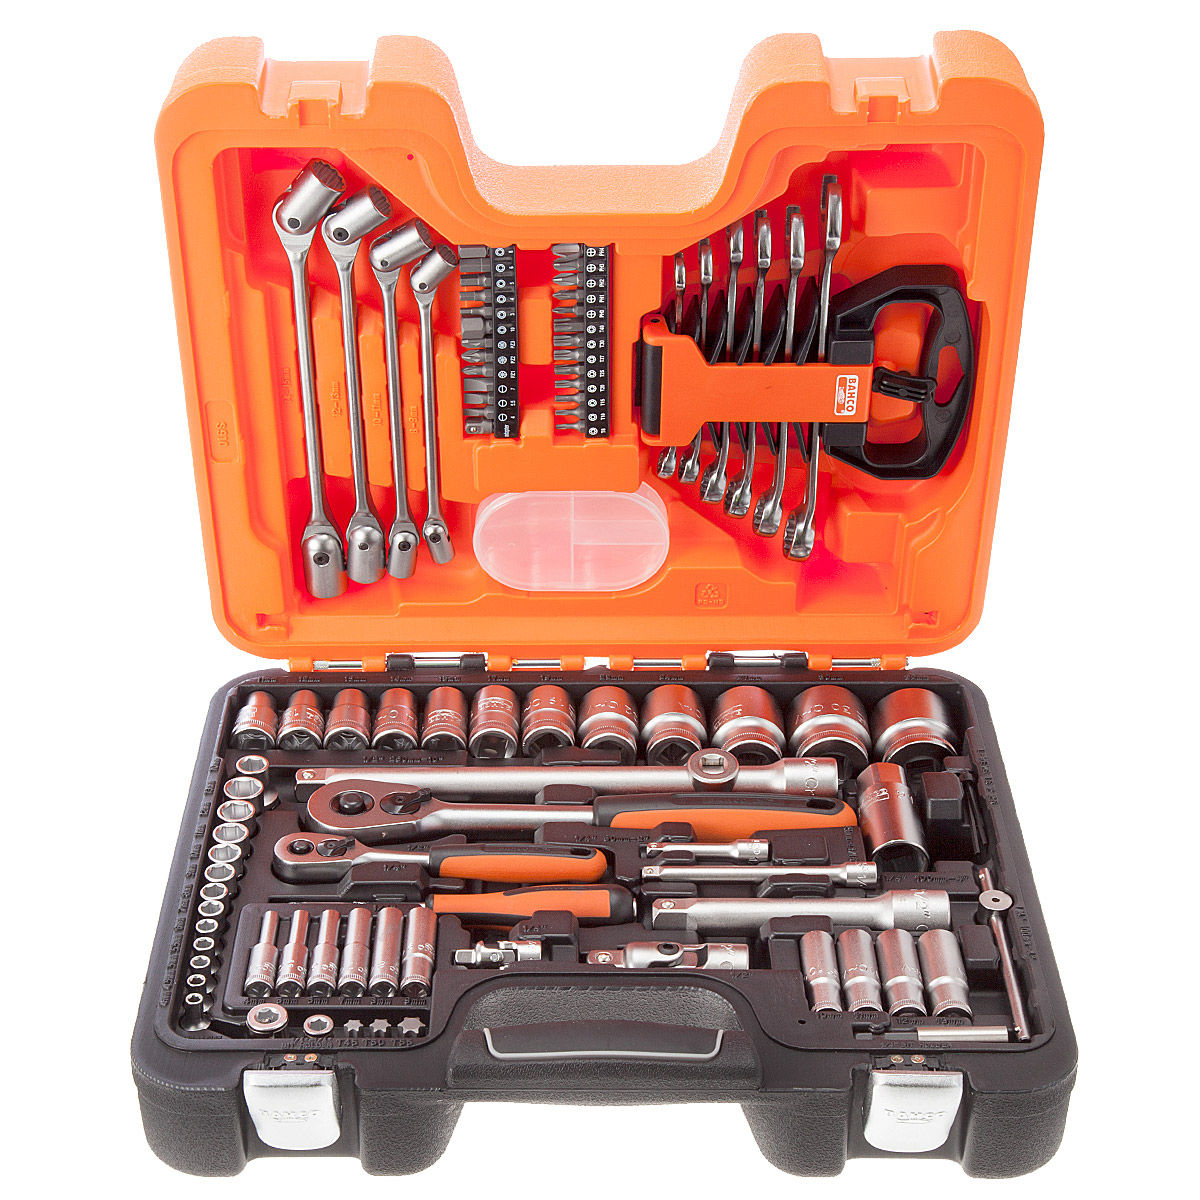 Toolstop Bahco S910 91 Piece Socket Set 1/4 Inch, 1/2 Inch and Dynamic Drive